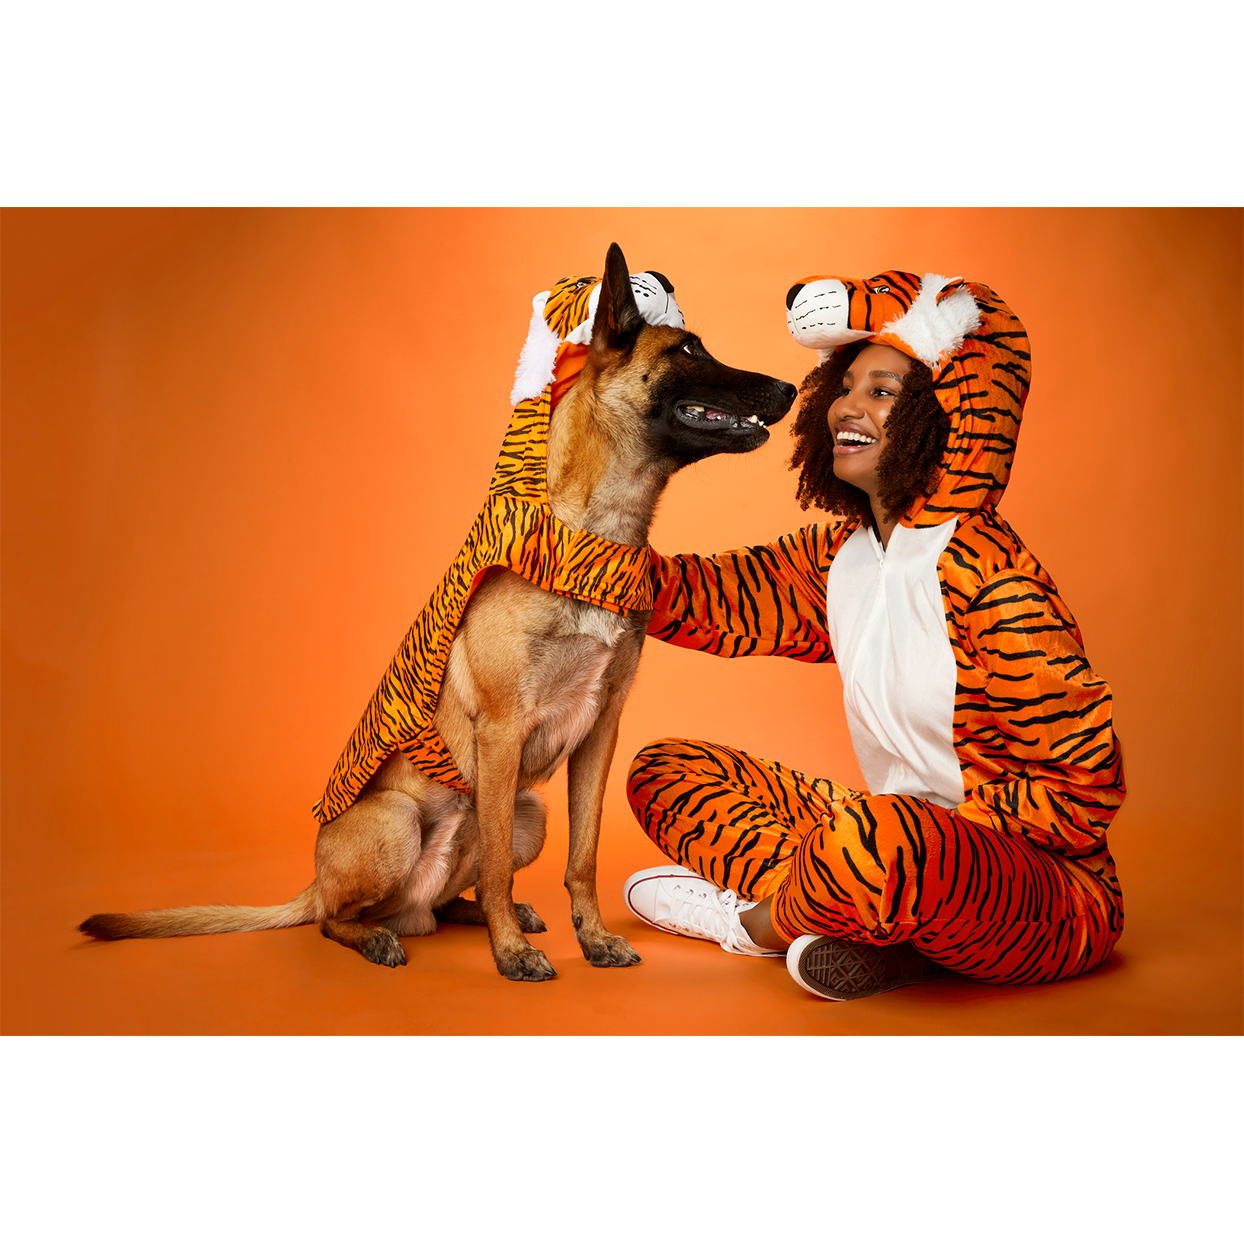 person and dog in tiger costumes